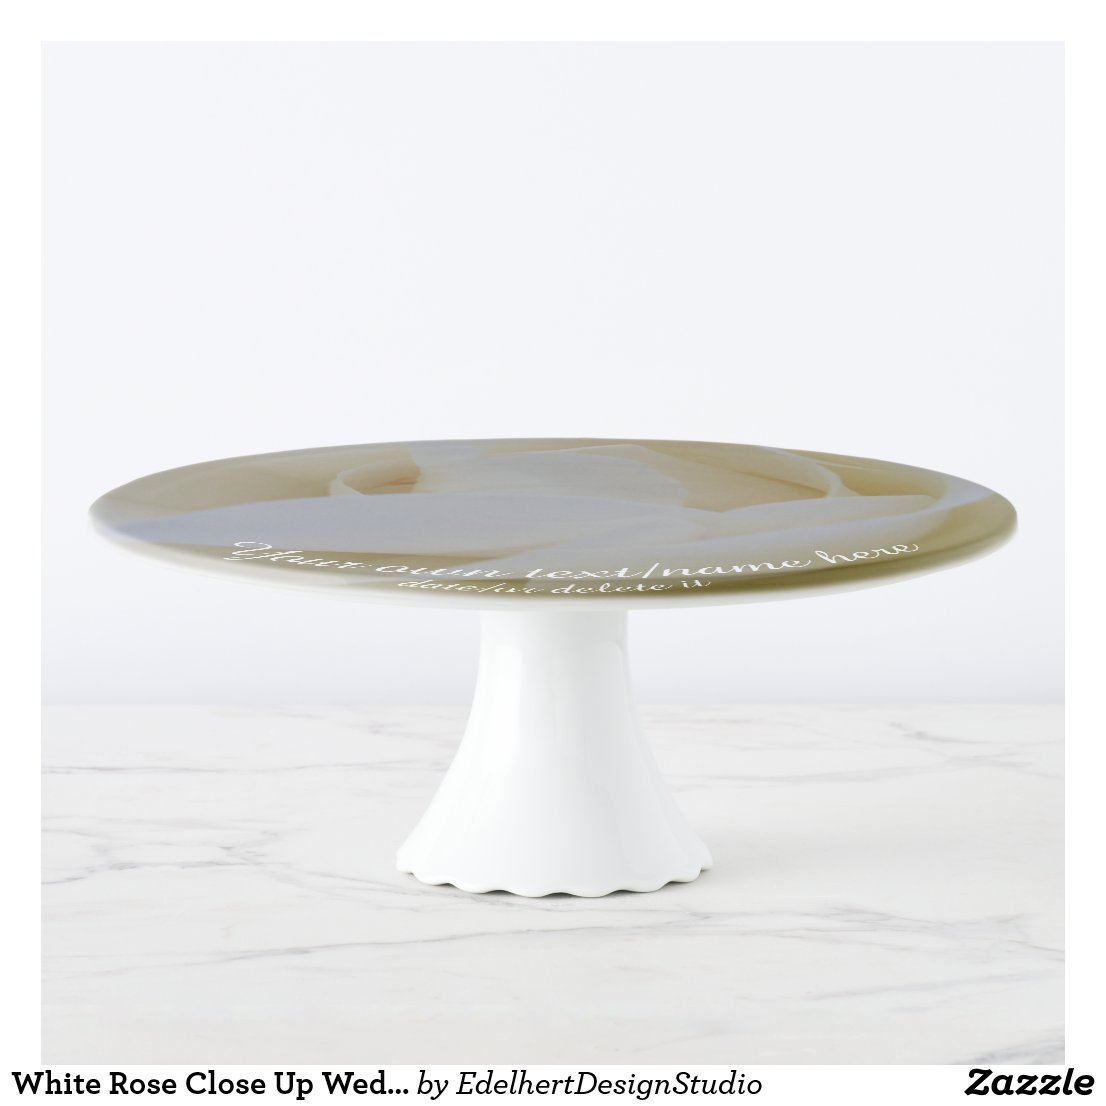 White Rose Close Up Wedding Cake Stand